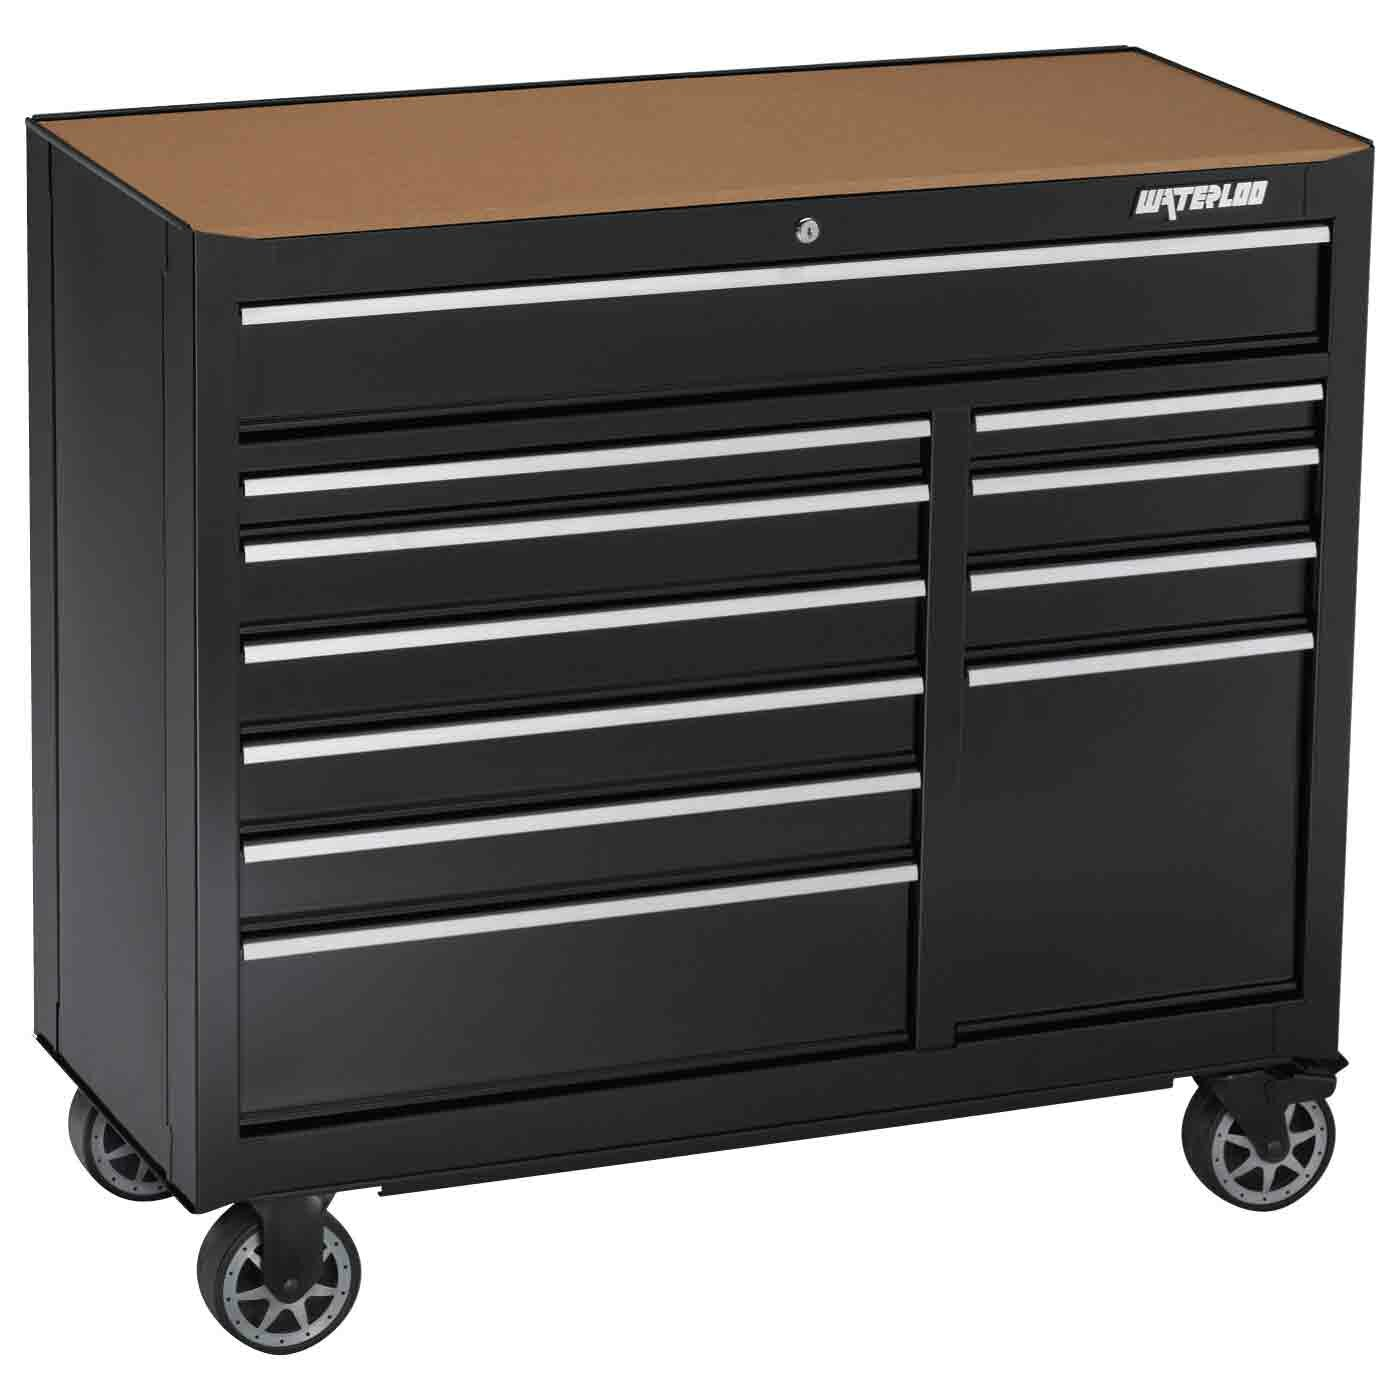 barcode upc tool cabinet waterloo spin boxes prod info com upcitemdb